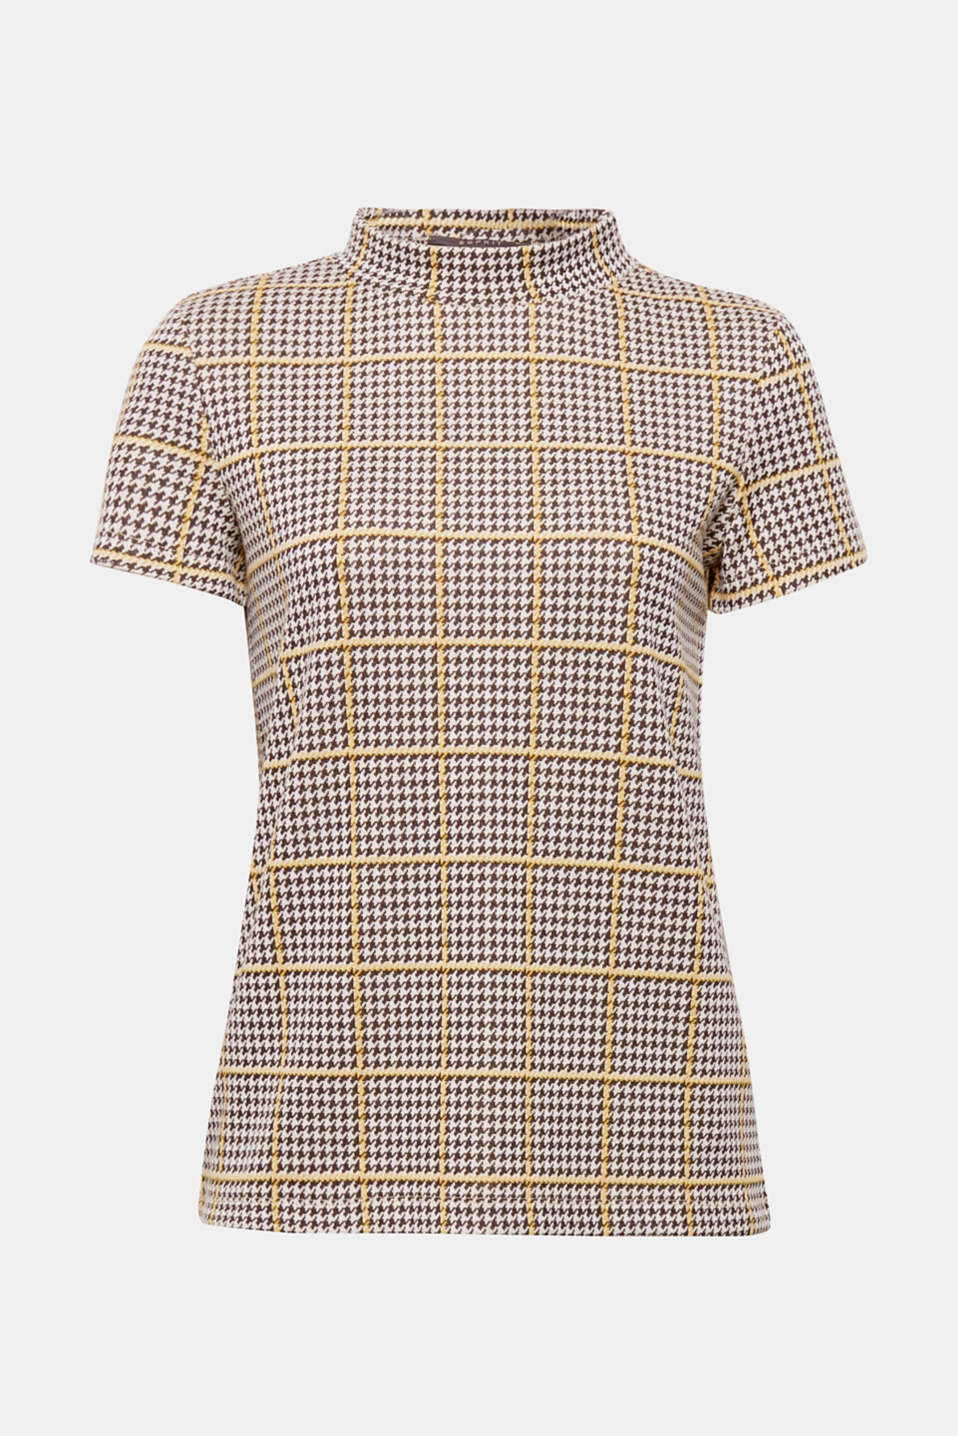 This soft jersey T-shirt is an everyday favourite, while the interplay of the fashionable stand-up collar and a classic houndstooth pattern creates a certain je ne sais quois.